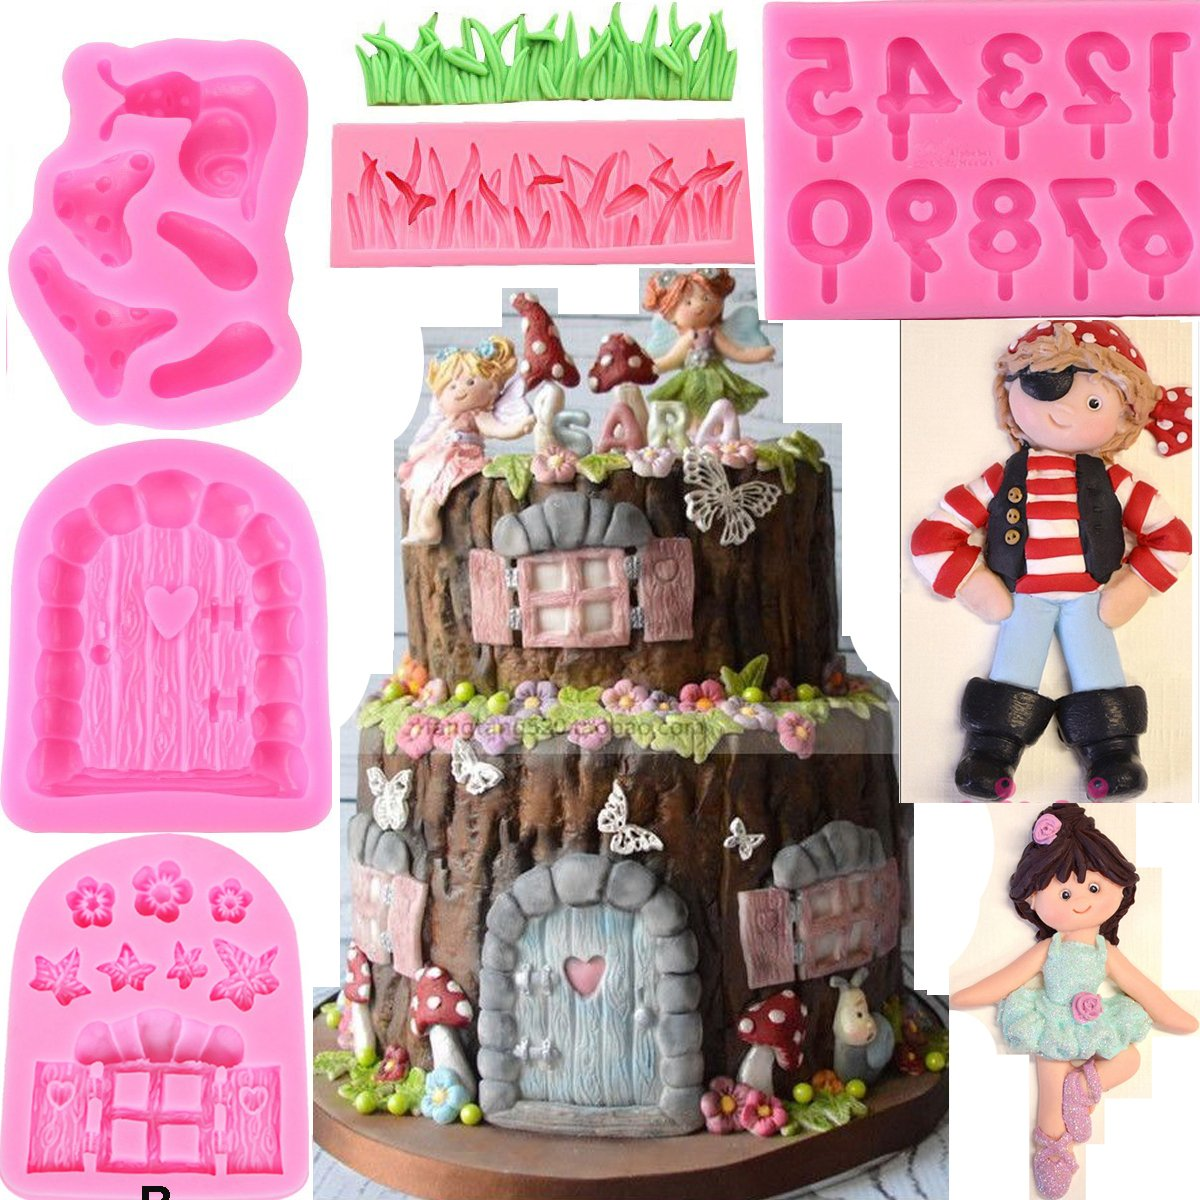 Anyana gnome mold fairy girl Silicone Cupcake Baking Molds forest party Fondant molds primate boy Cake Decorating Tools Gumpaste snail grass Chocolate Candy Clay Moulds Non stick easy to use set of 7